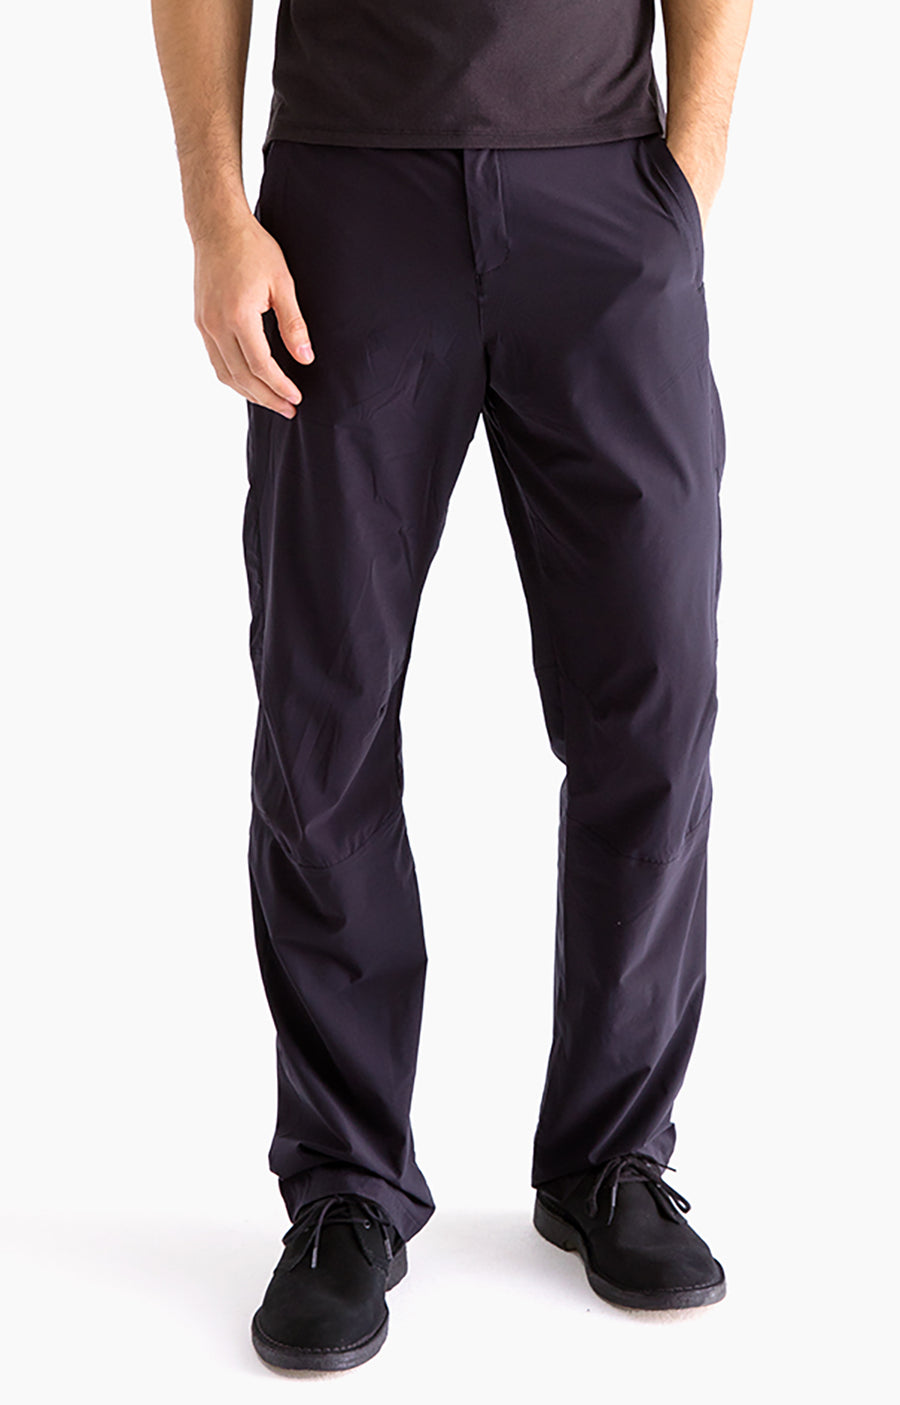 c11ce0e816c1 The Ultimate Travel Pants. For a limited time